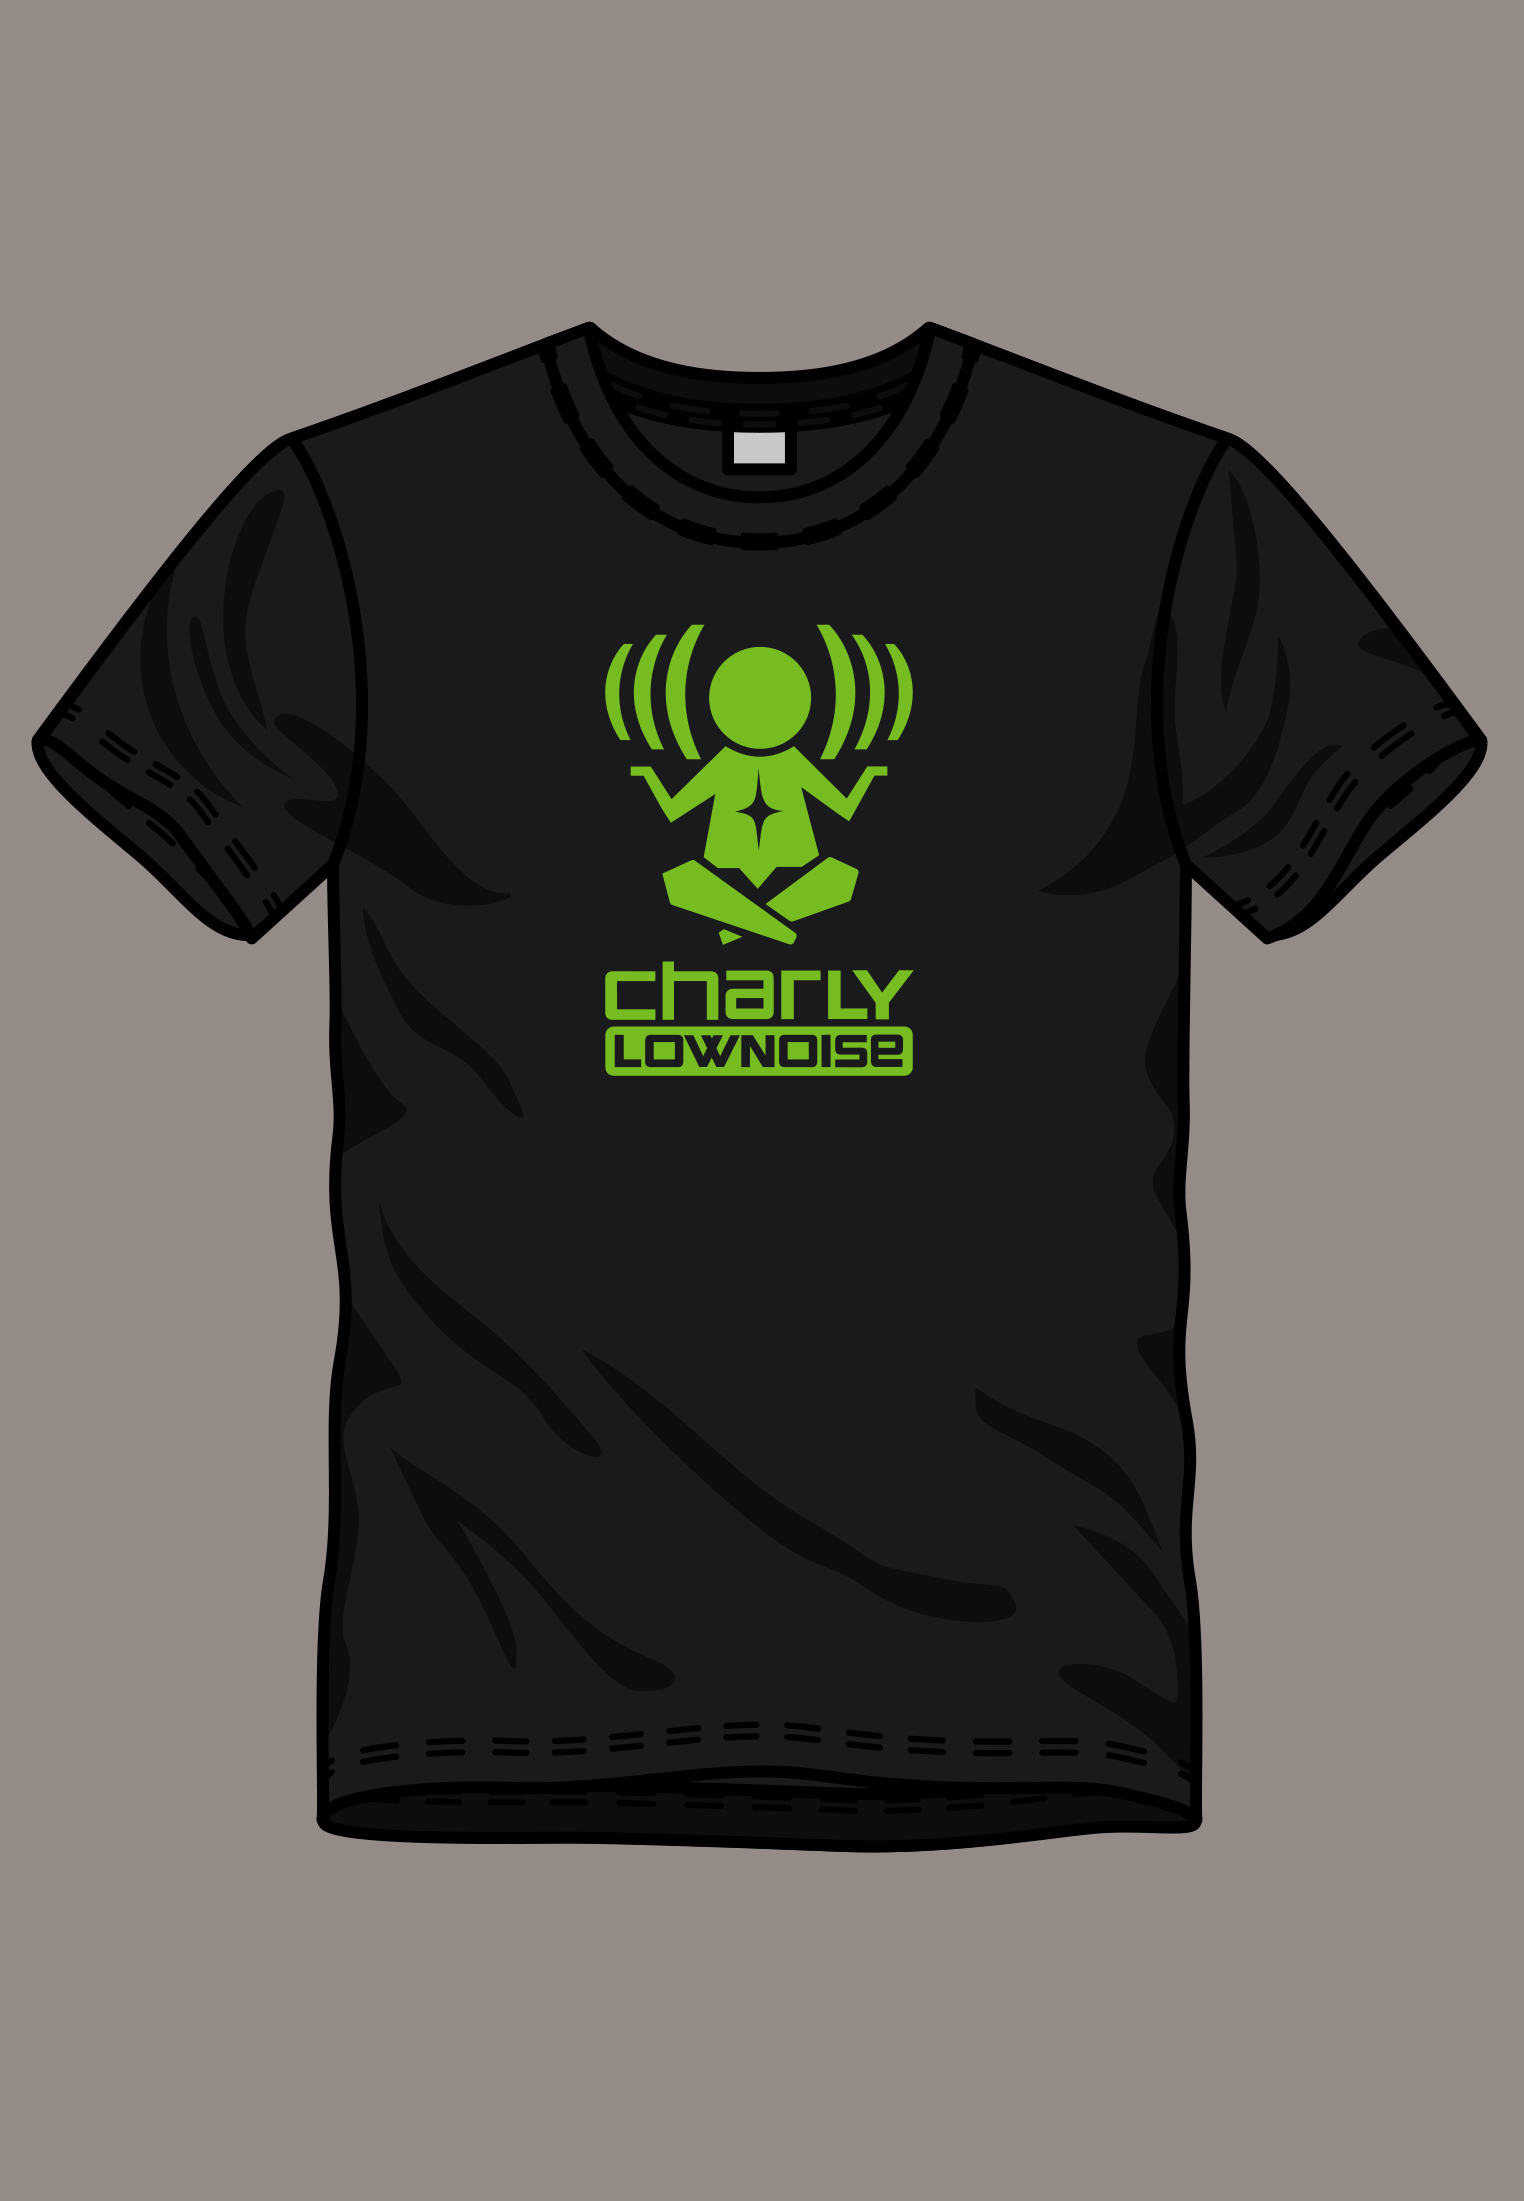 Charly Lownoise t-shirt green logo